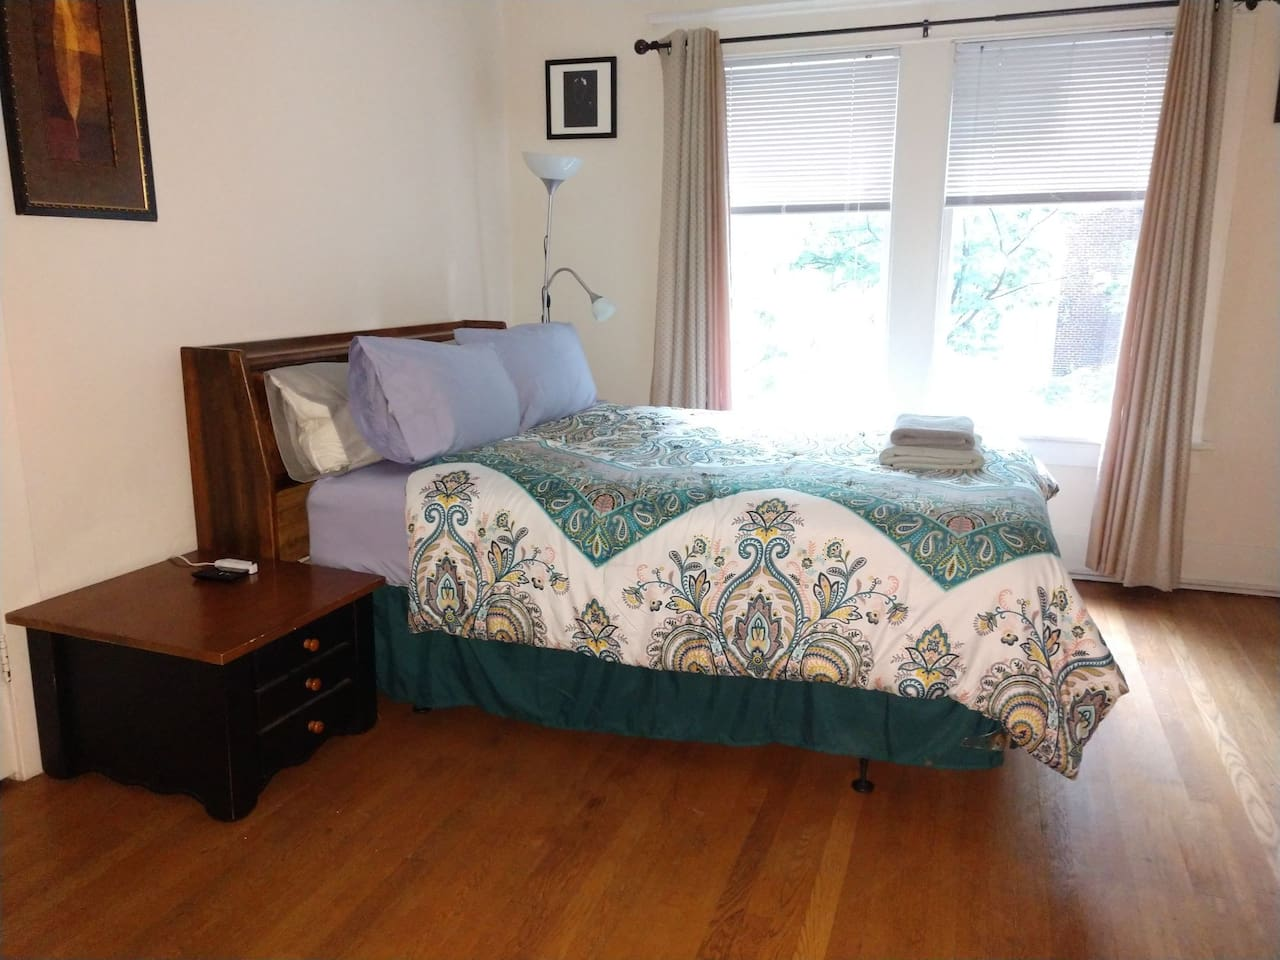 Full-size bed with reader light, night stand and headboard shelf